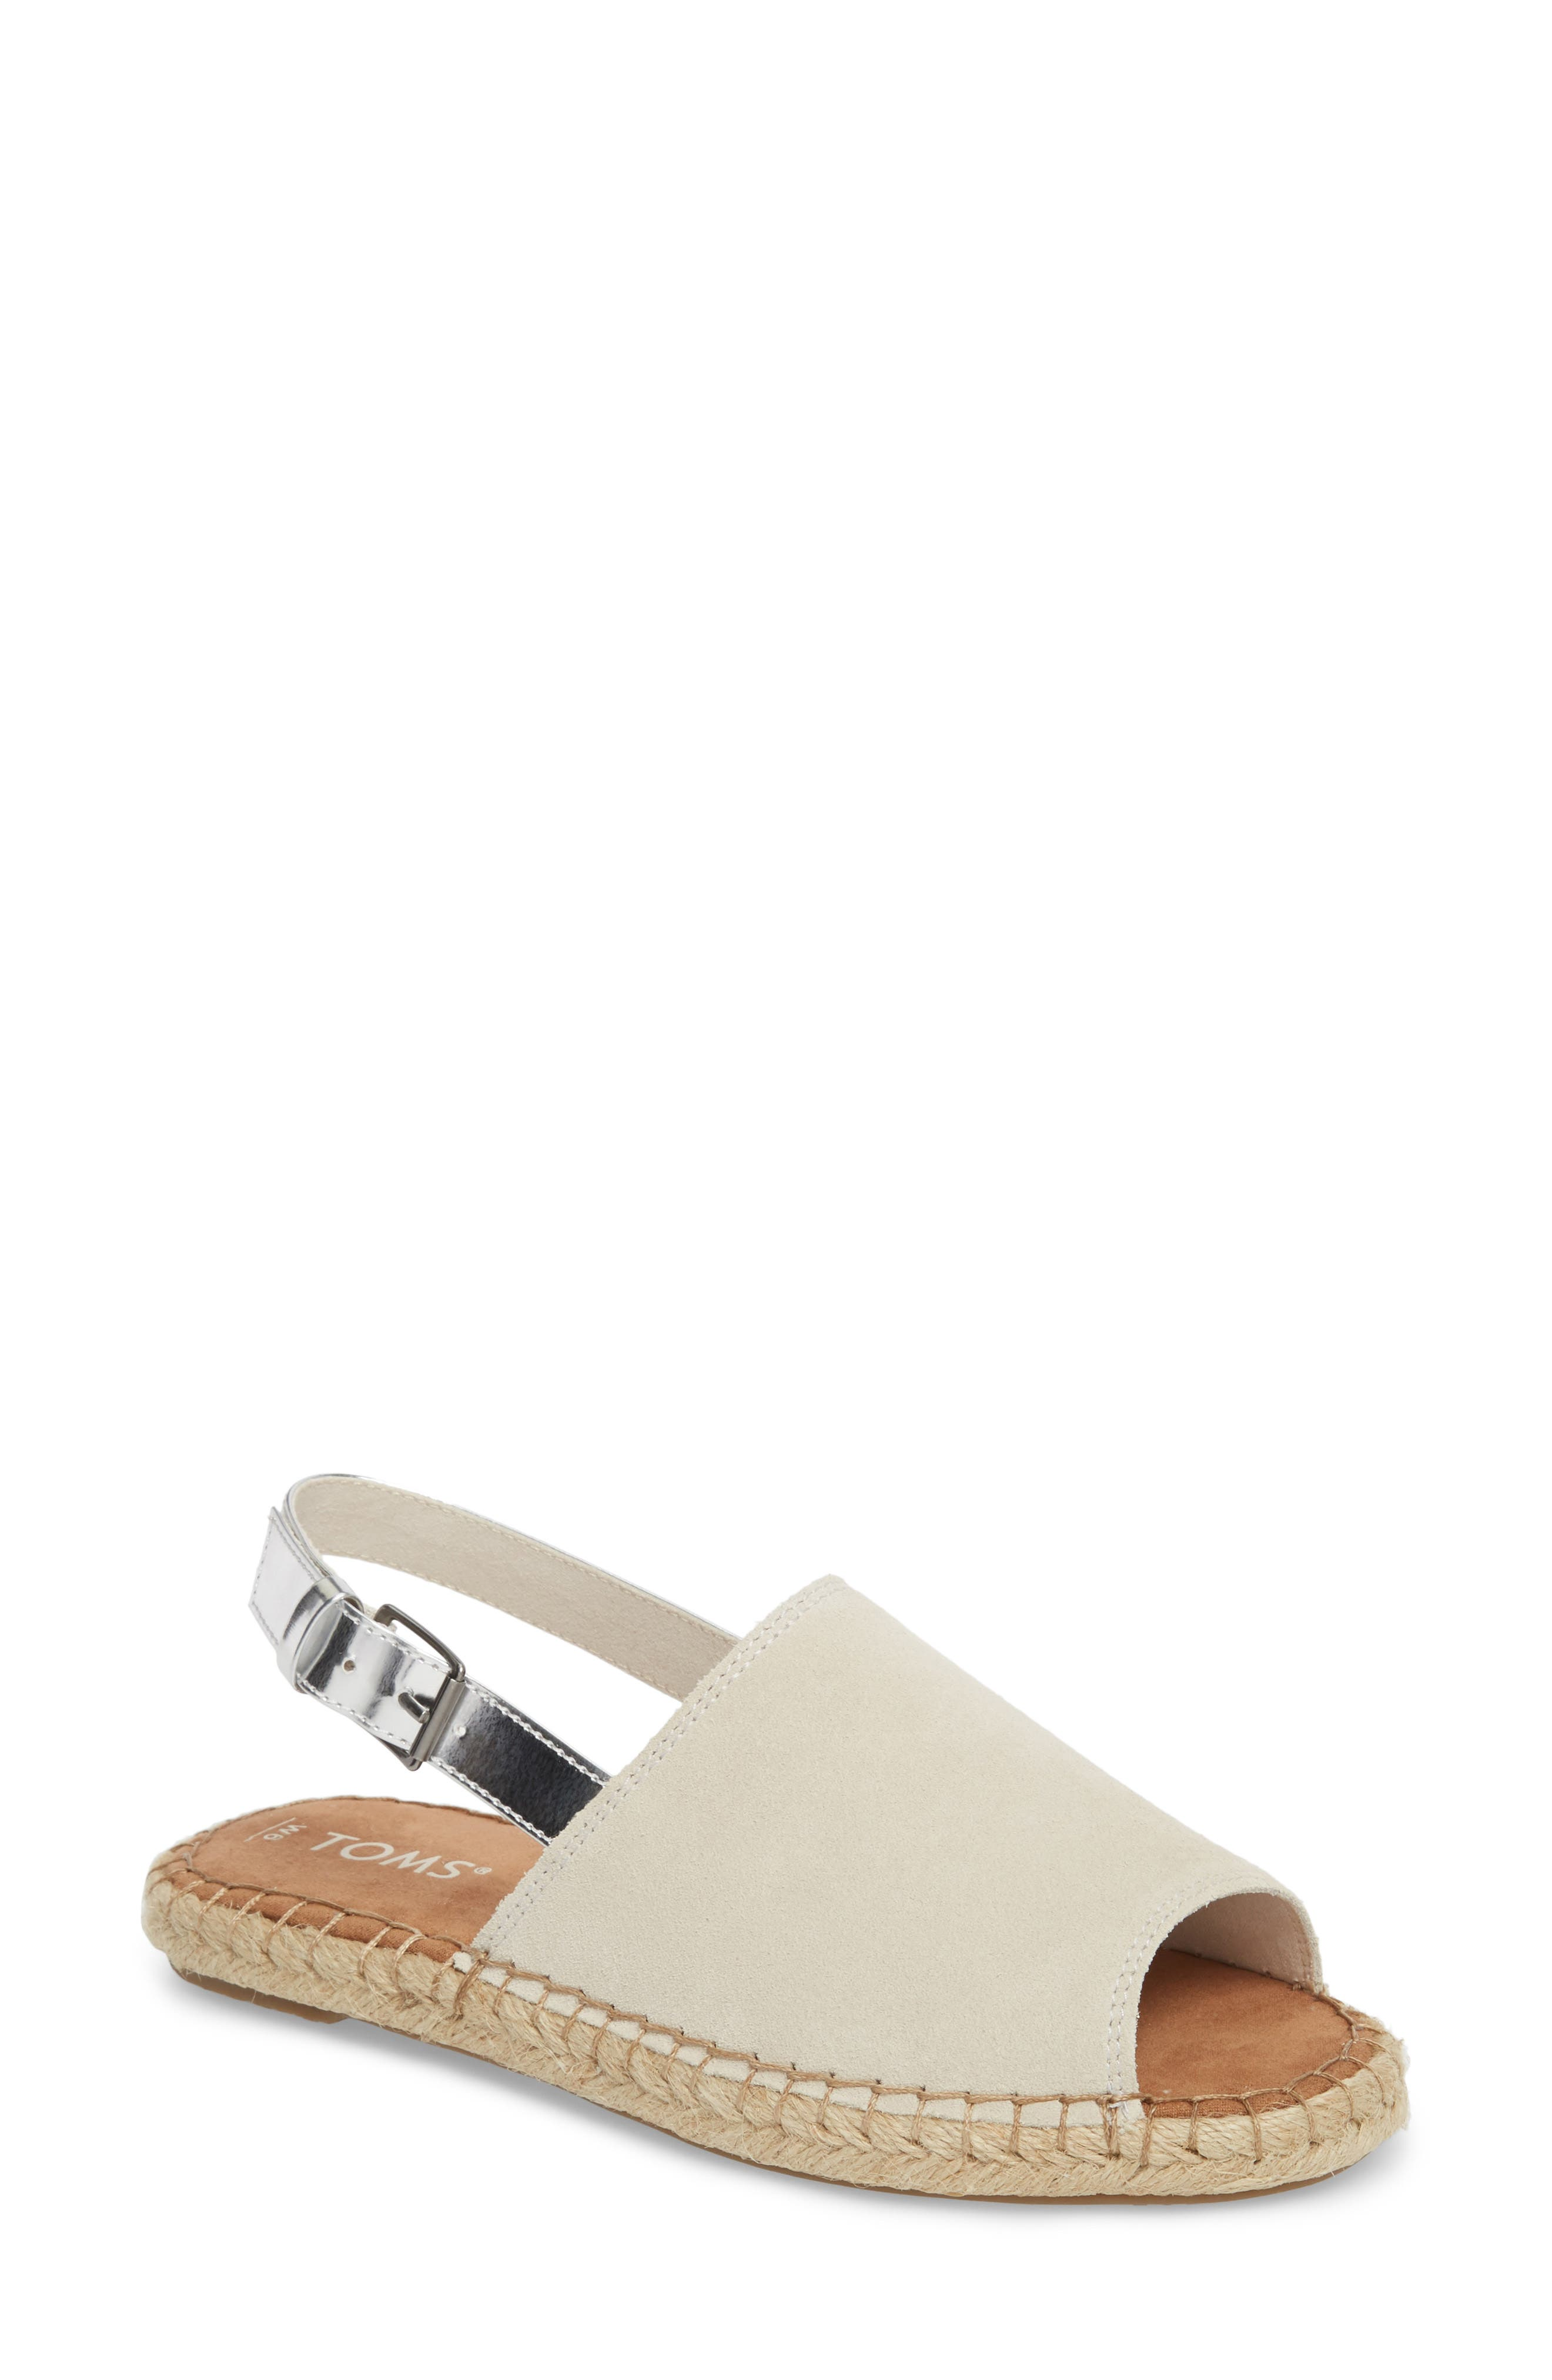 Clara Slingback Sandal,                         Main,                         color, Birch Suede